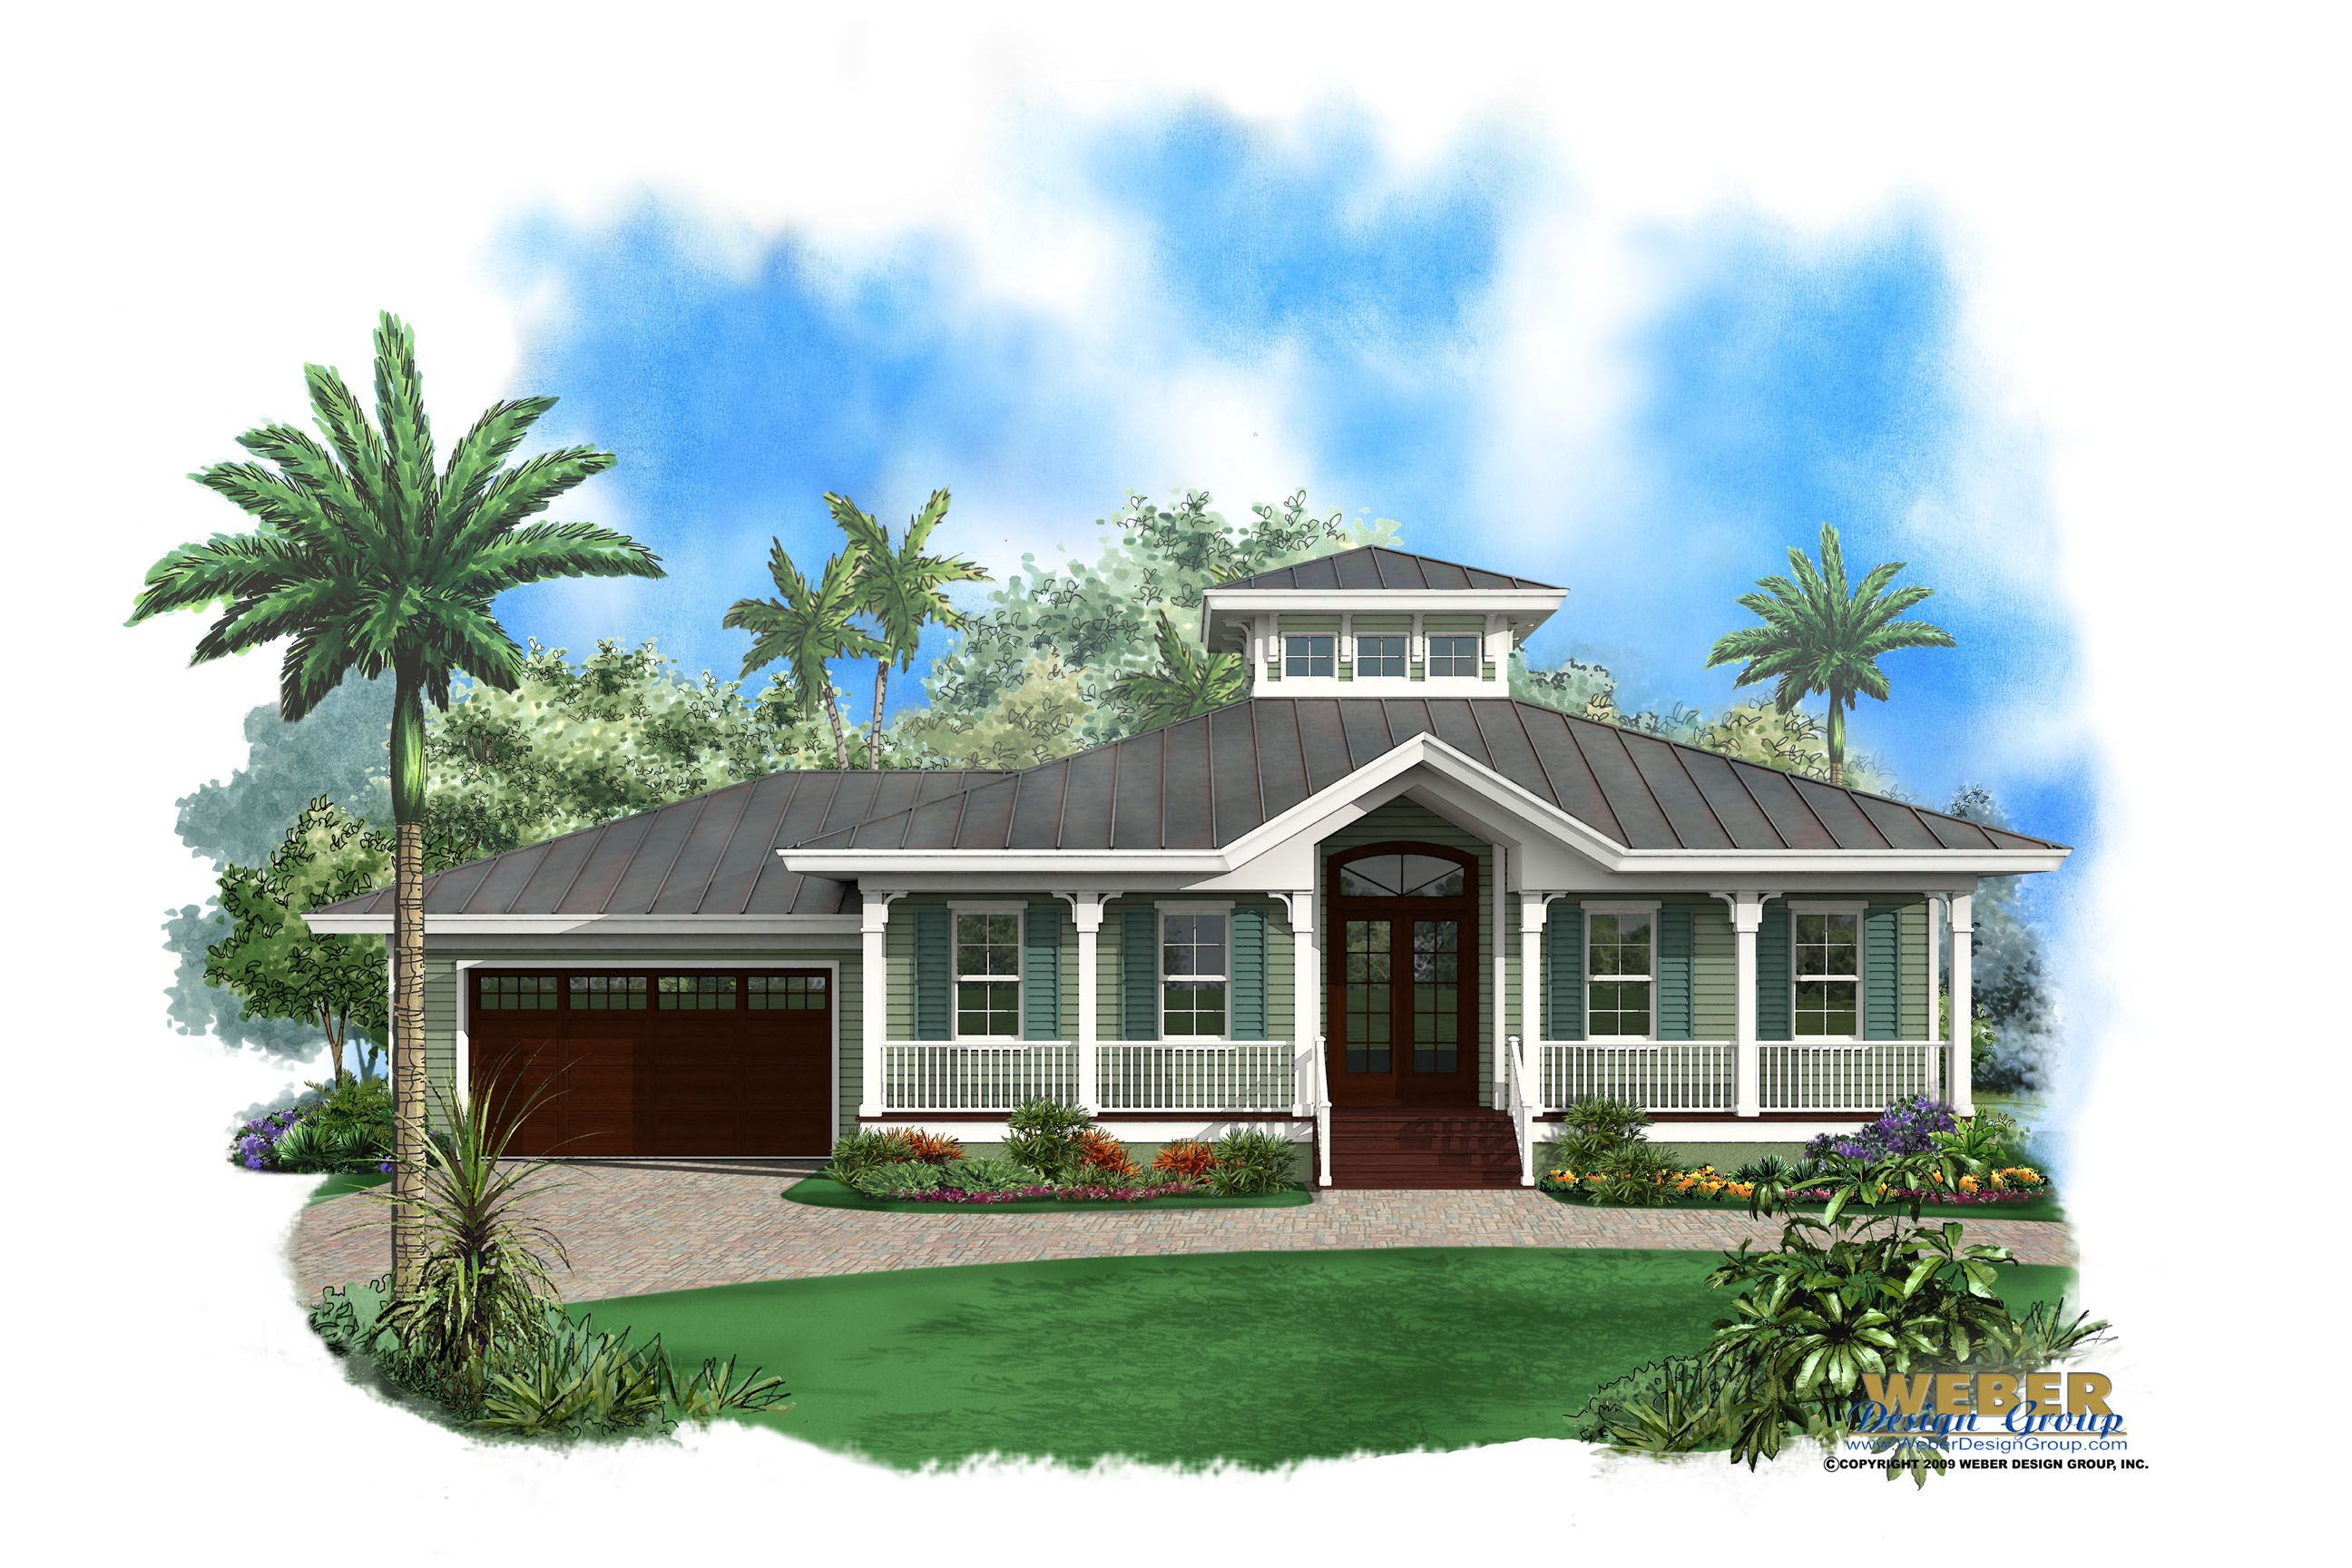 Ambergris Cay Home Plan 3 Bed 2 Bath Olde Florida Er Style House Covered Front Porch For Coastal Intercoastal Lot Car Garage Pictures Specs